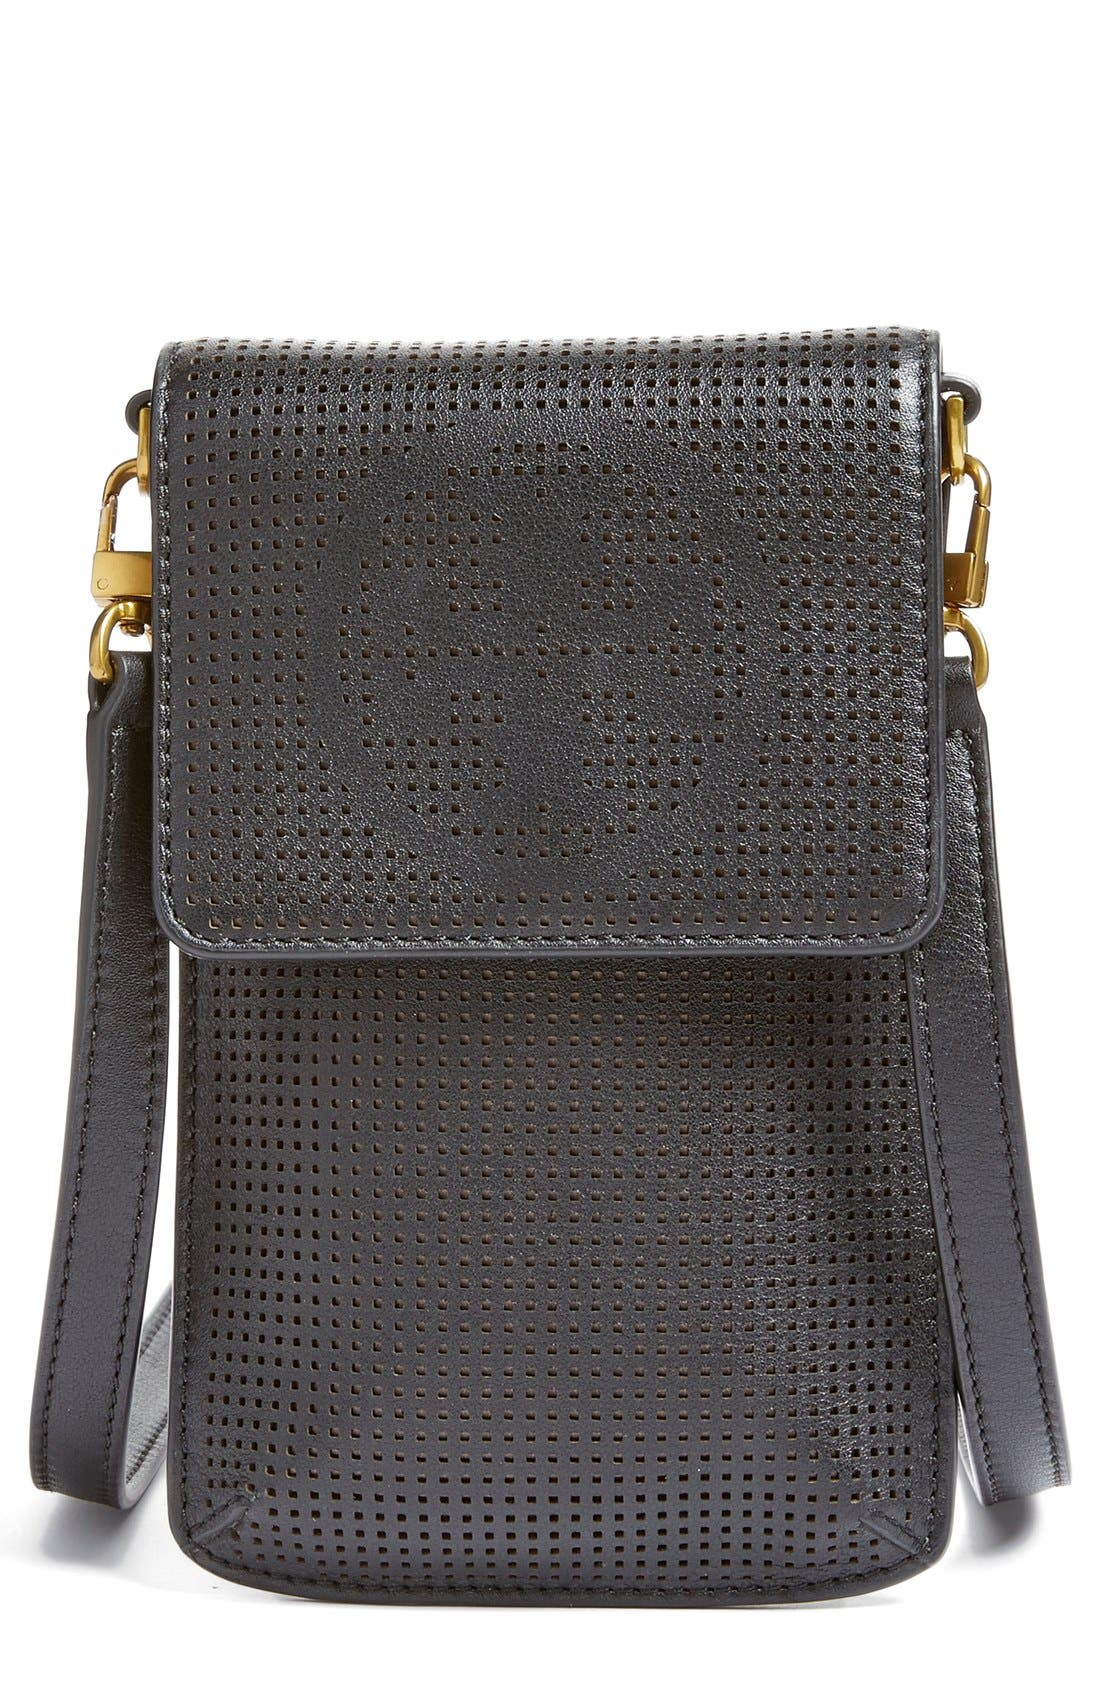 Main Image - Tory Burch Perforated Leather Smartphone Crossbody Bag